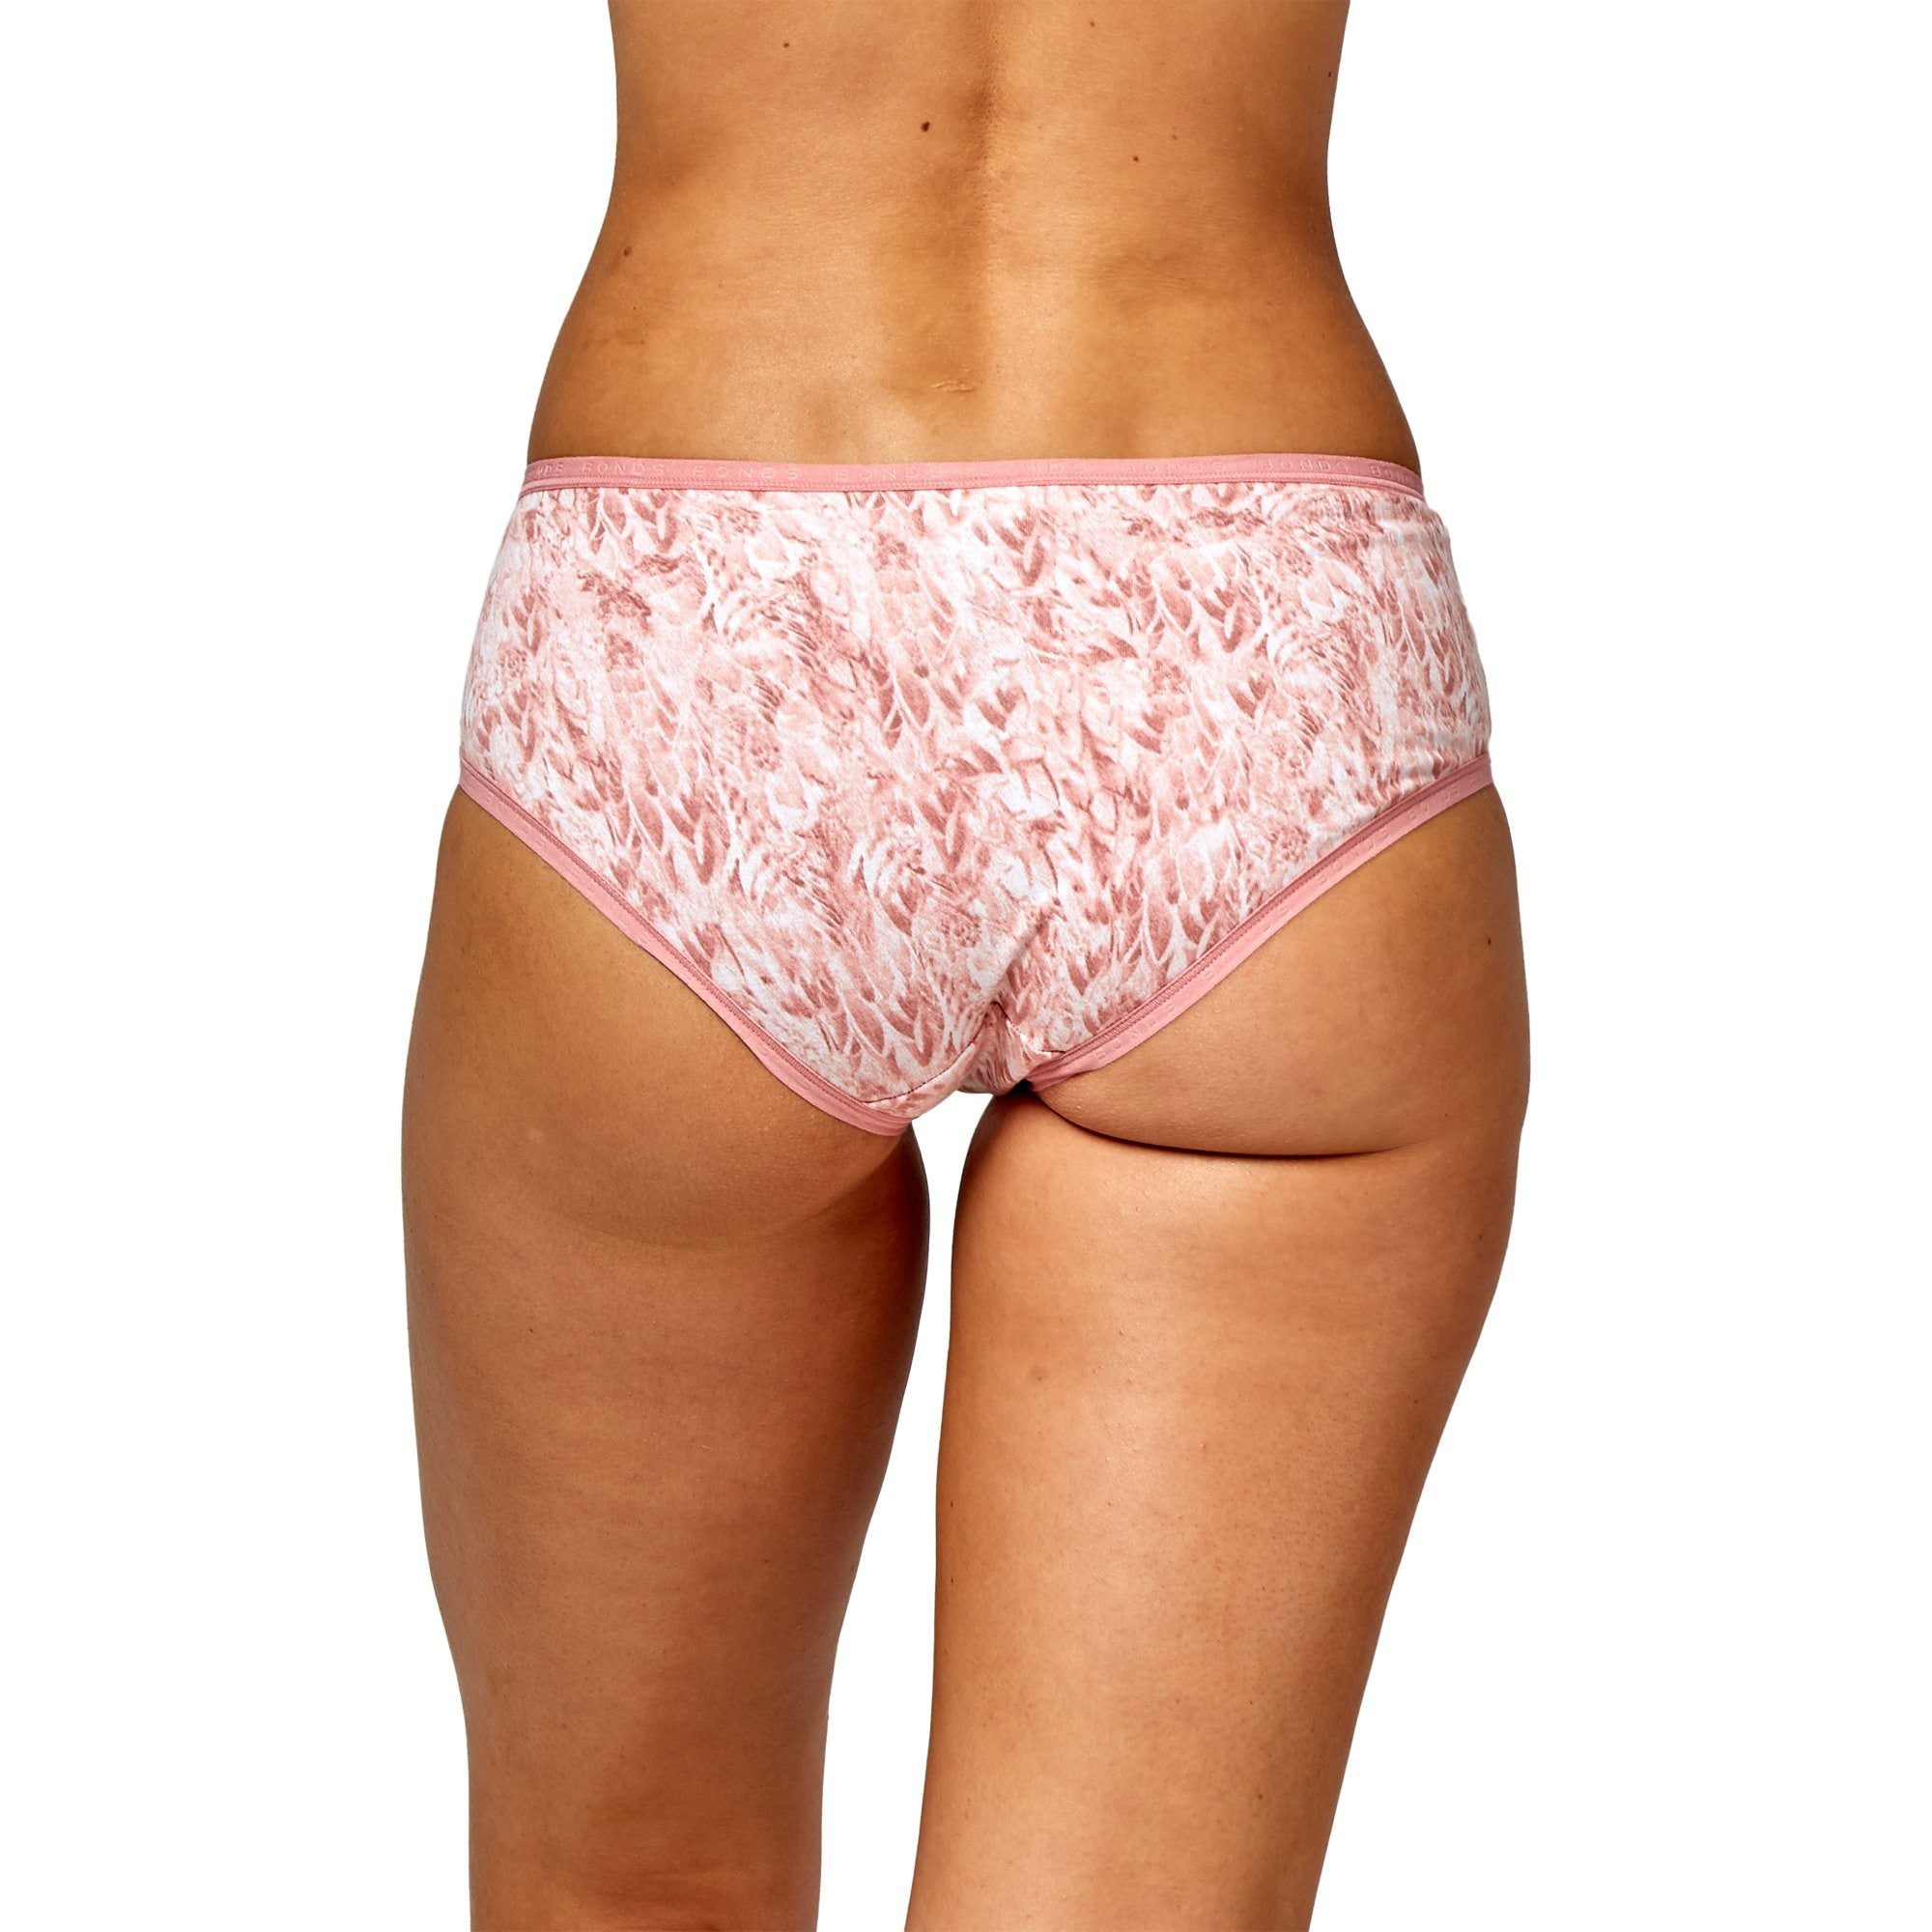 Bonds Women'S Underwear Comfytails Ydg Midi - Print 6Ea Women's Underwear Bonds